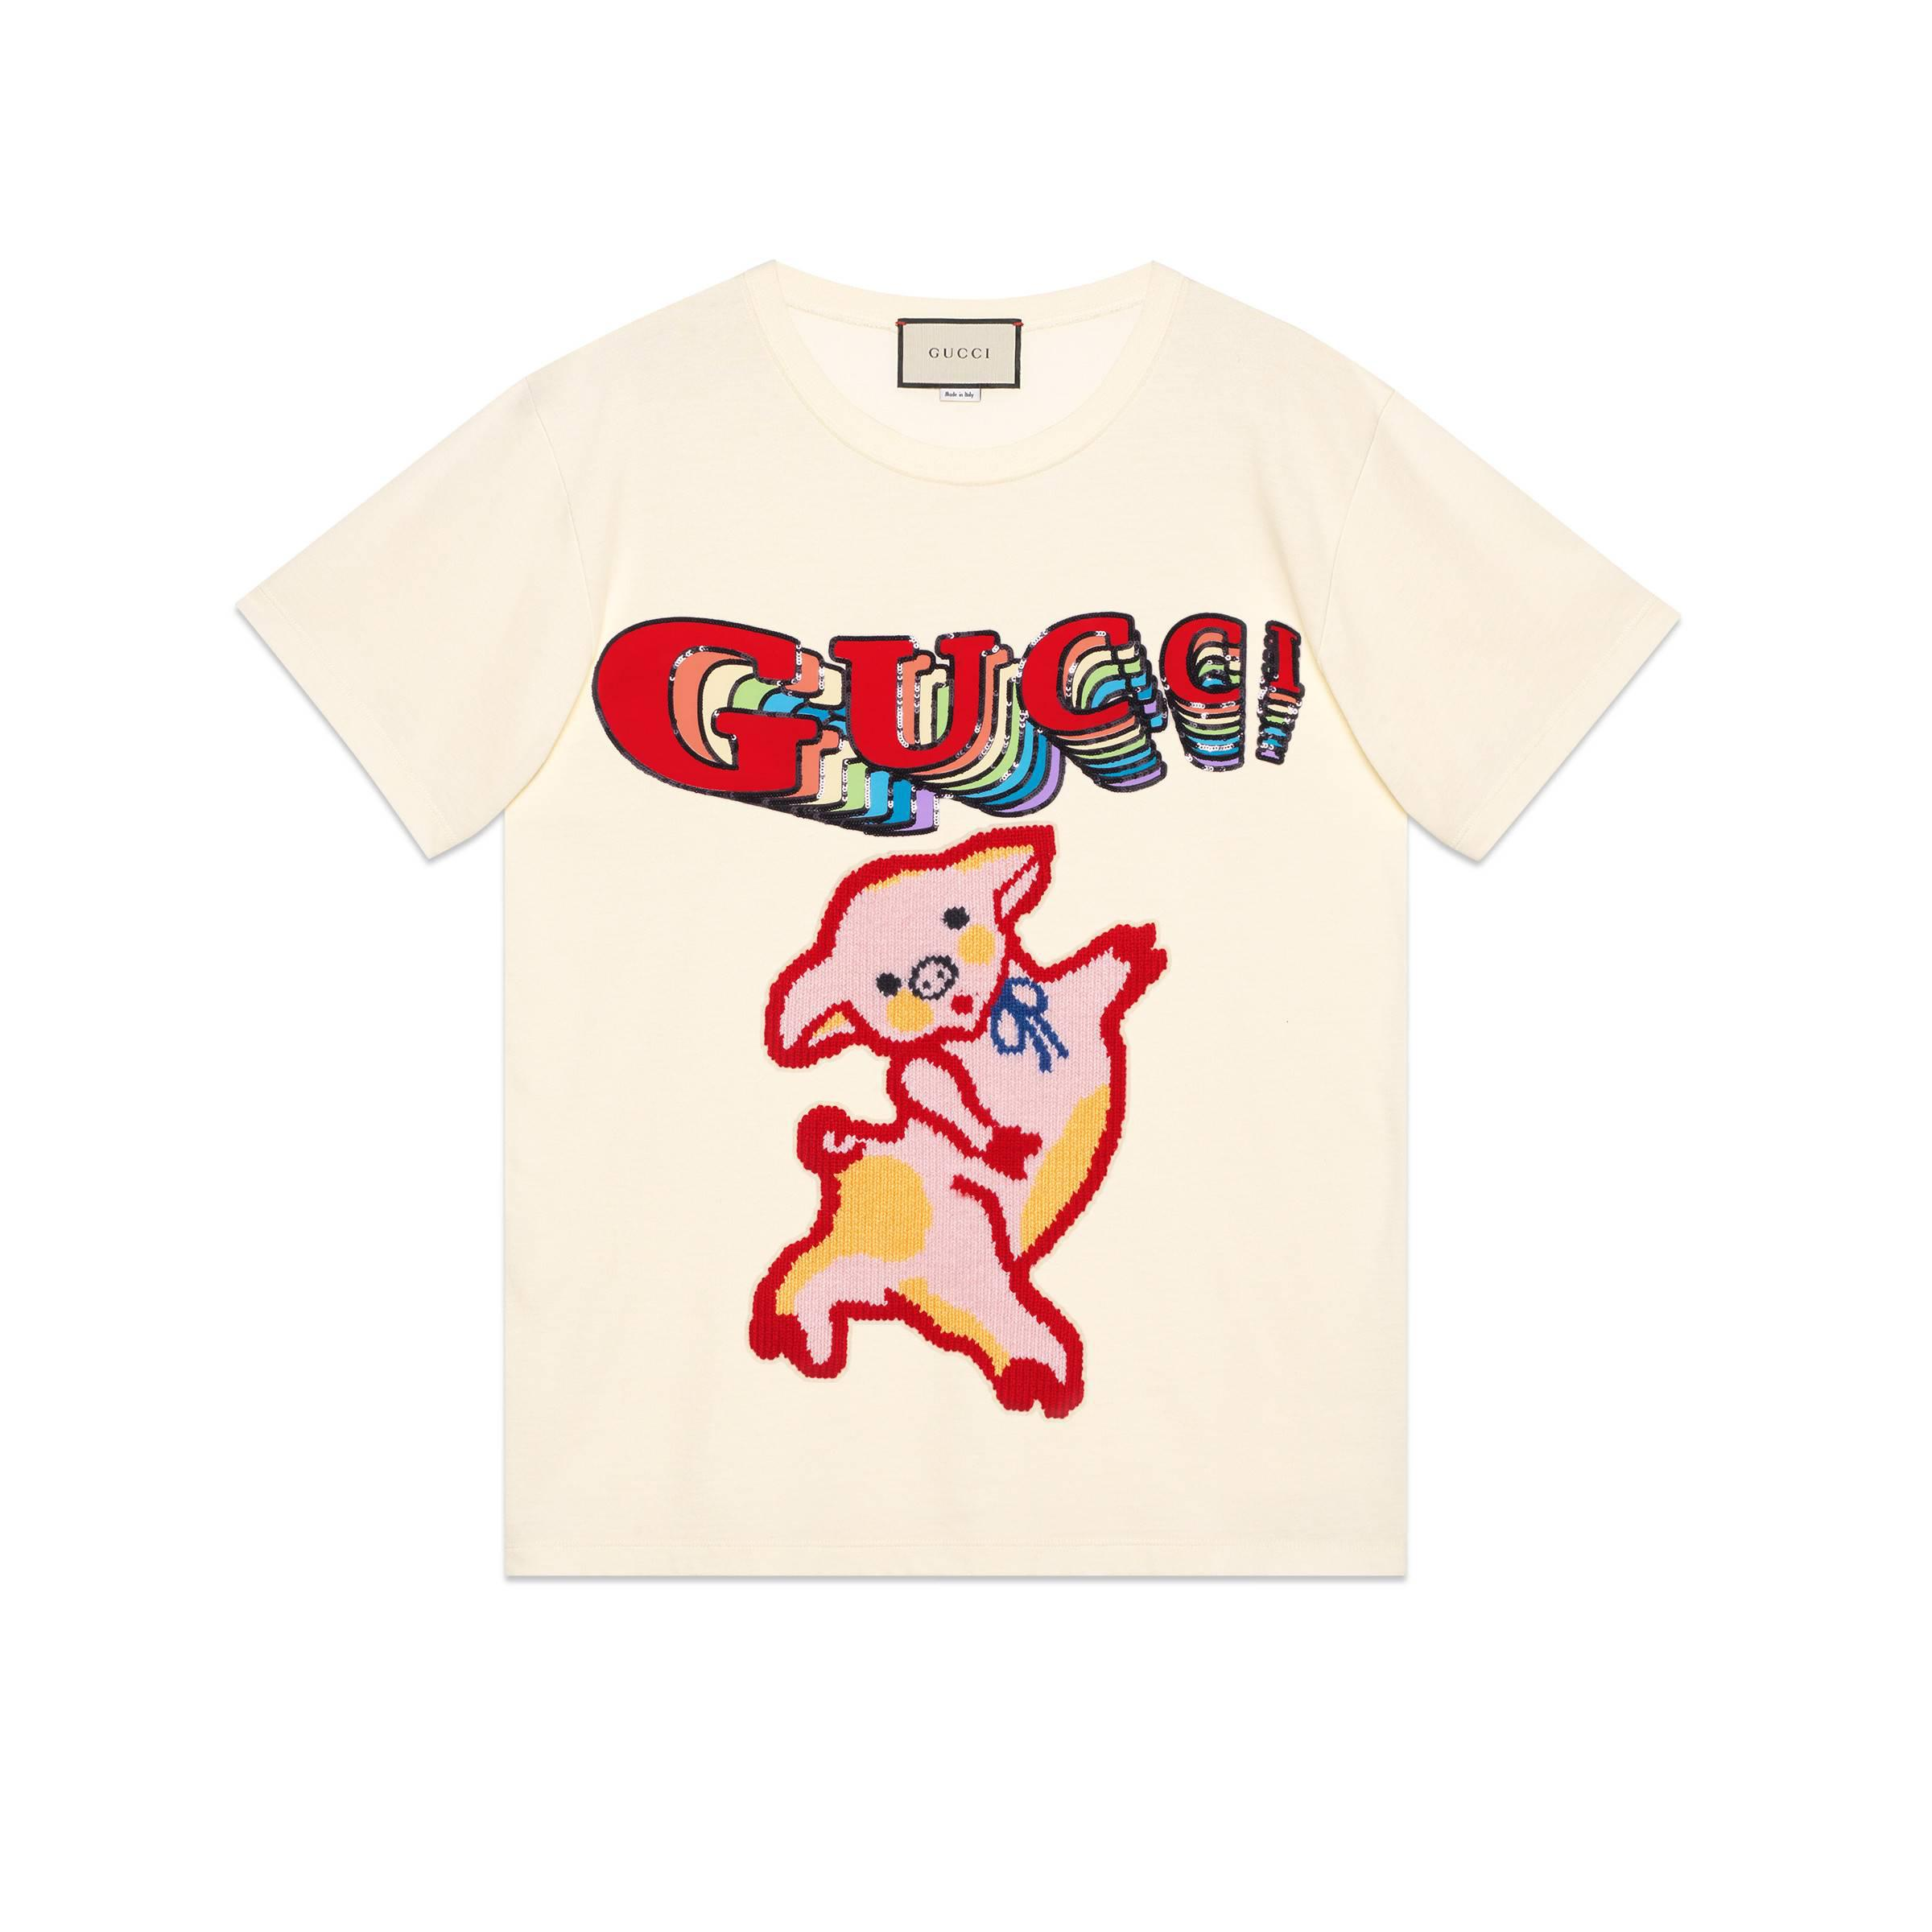 2770797ab Gucci Women's Oversize Cotton T-shirt With Piglet in White - Lyst